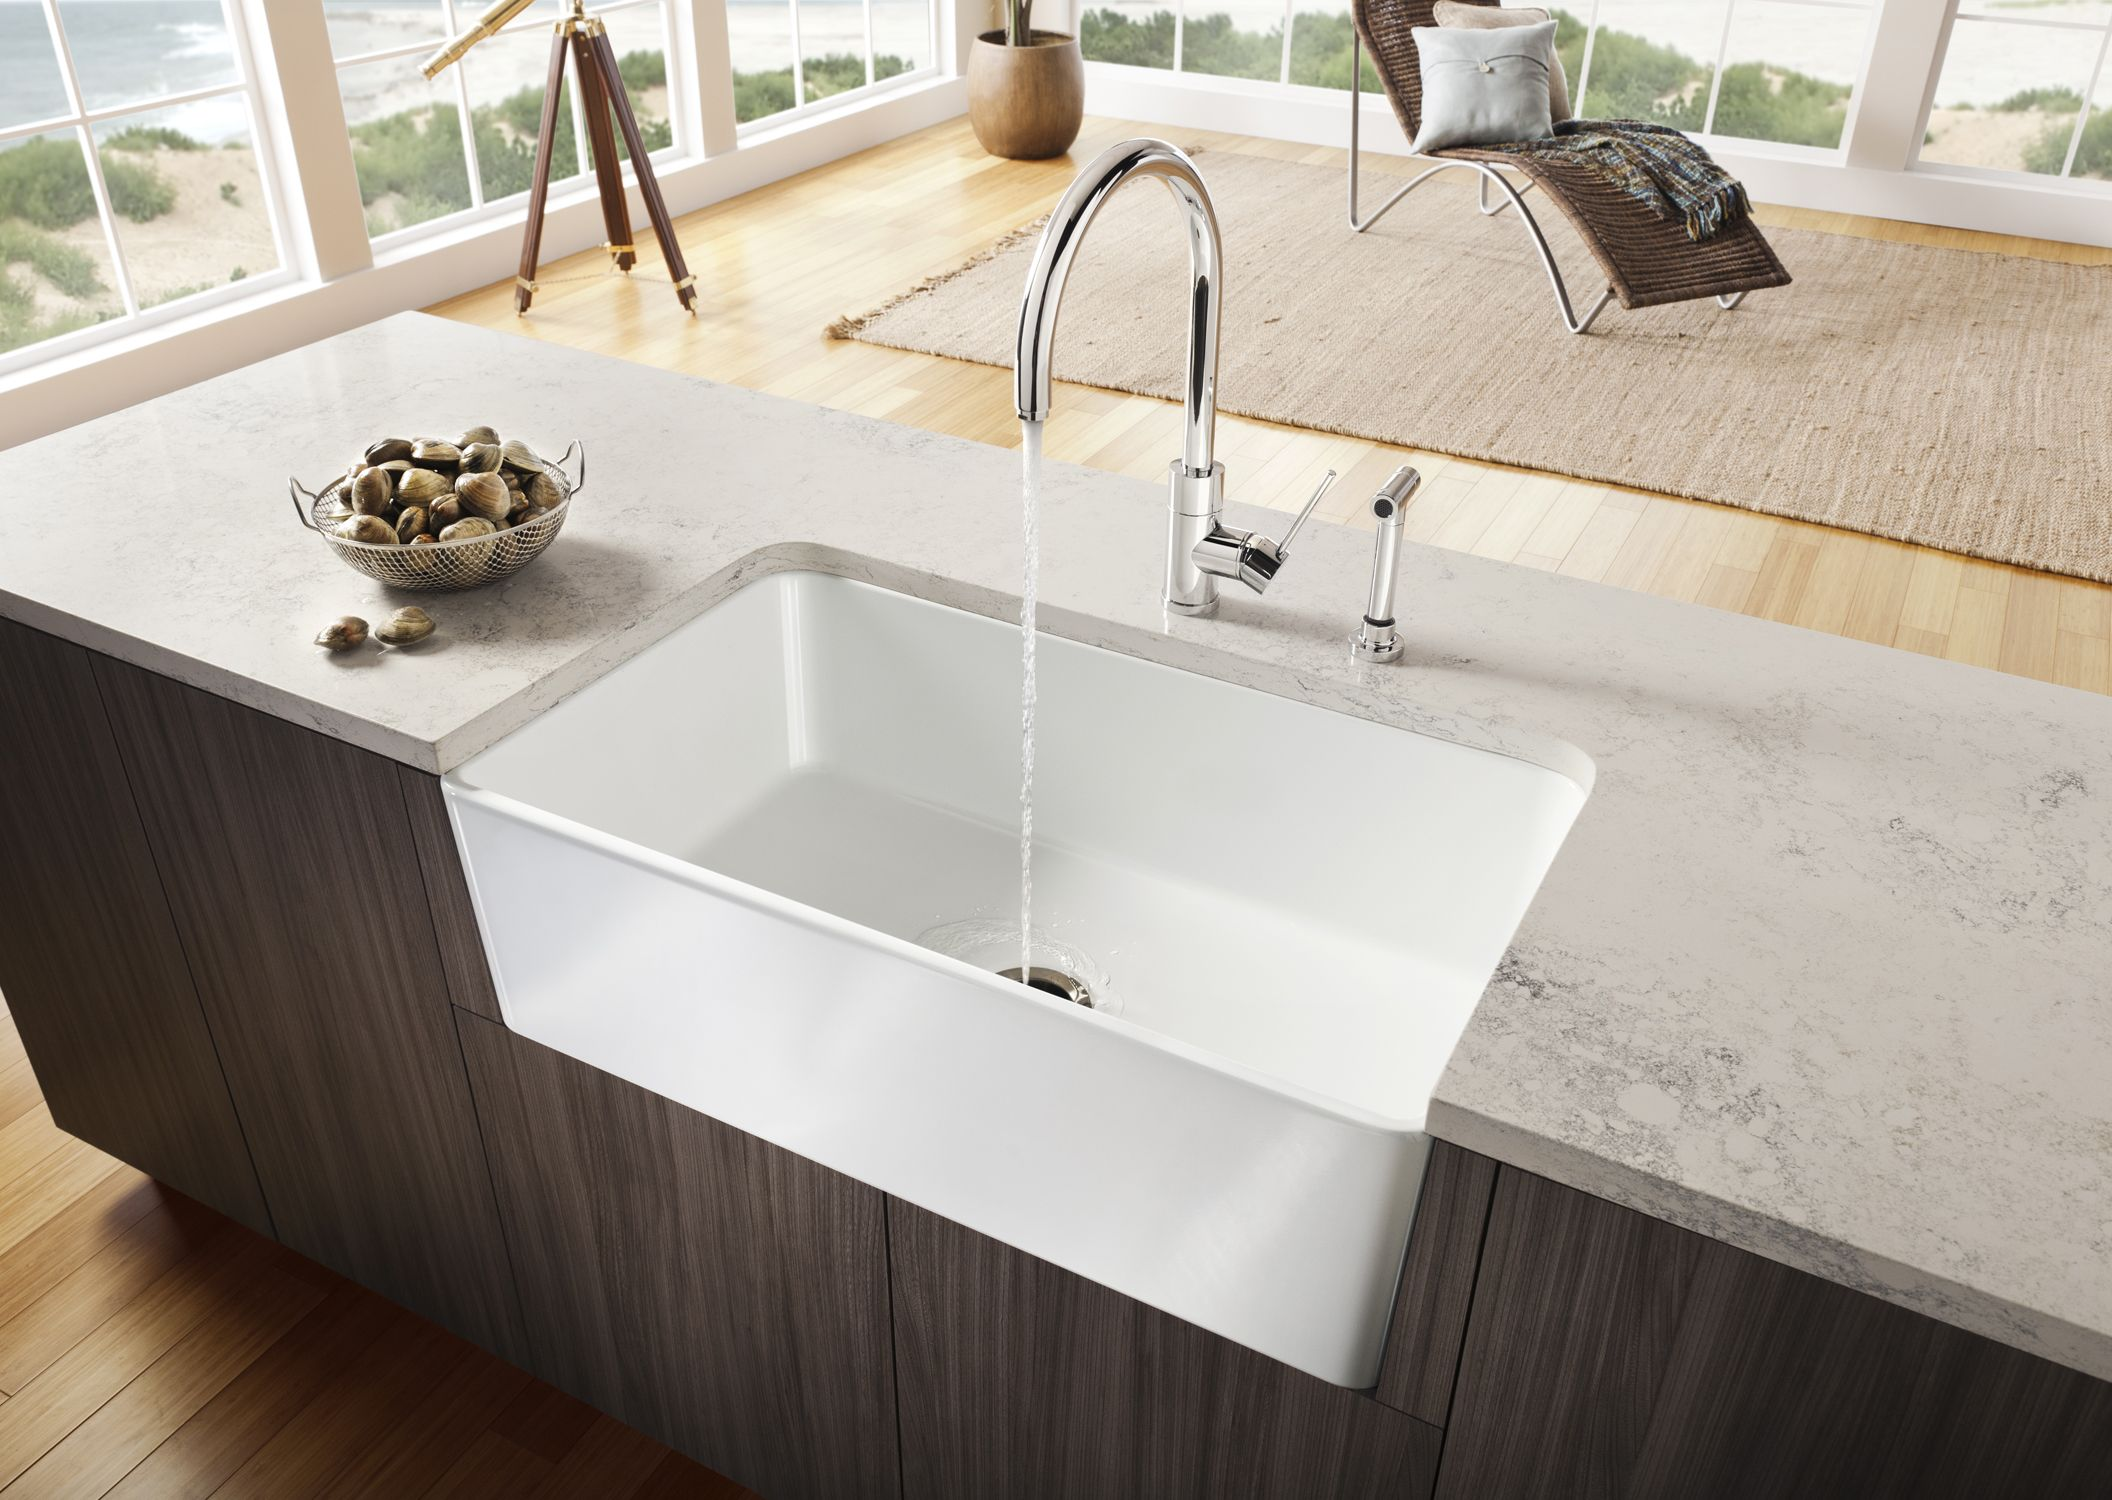 Blanco Sink W Satin Side Spray Faucet And Soap Dispenser Con